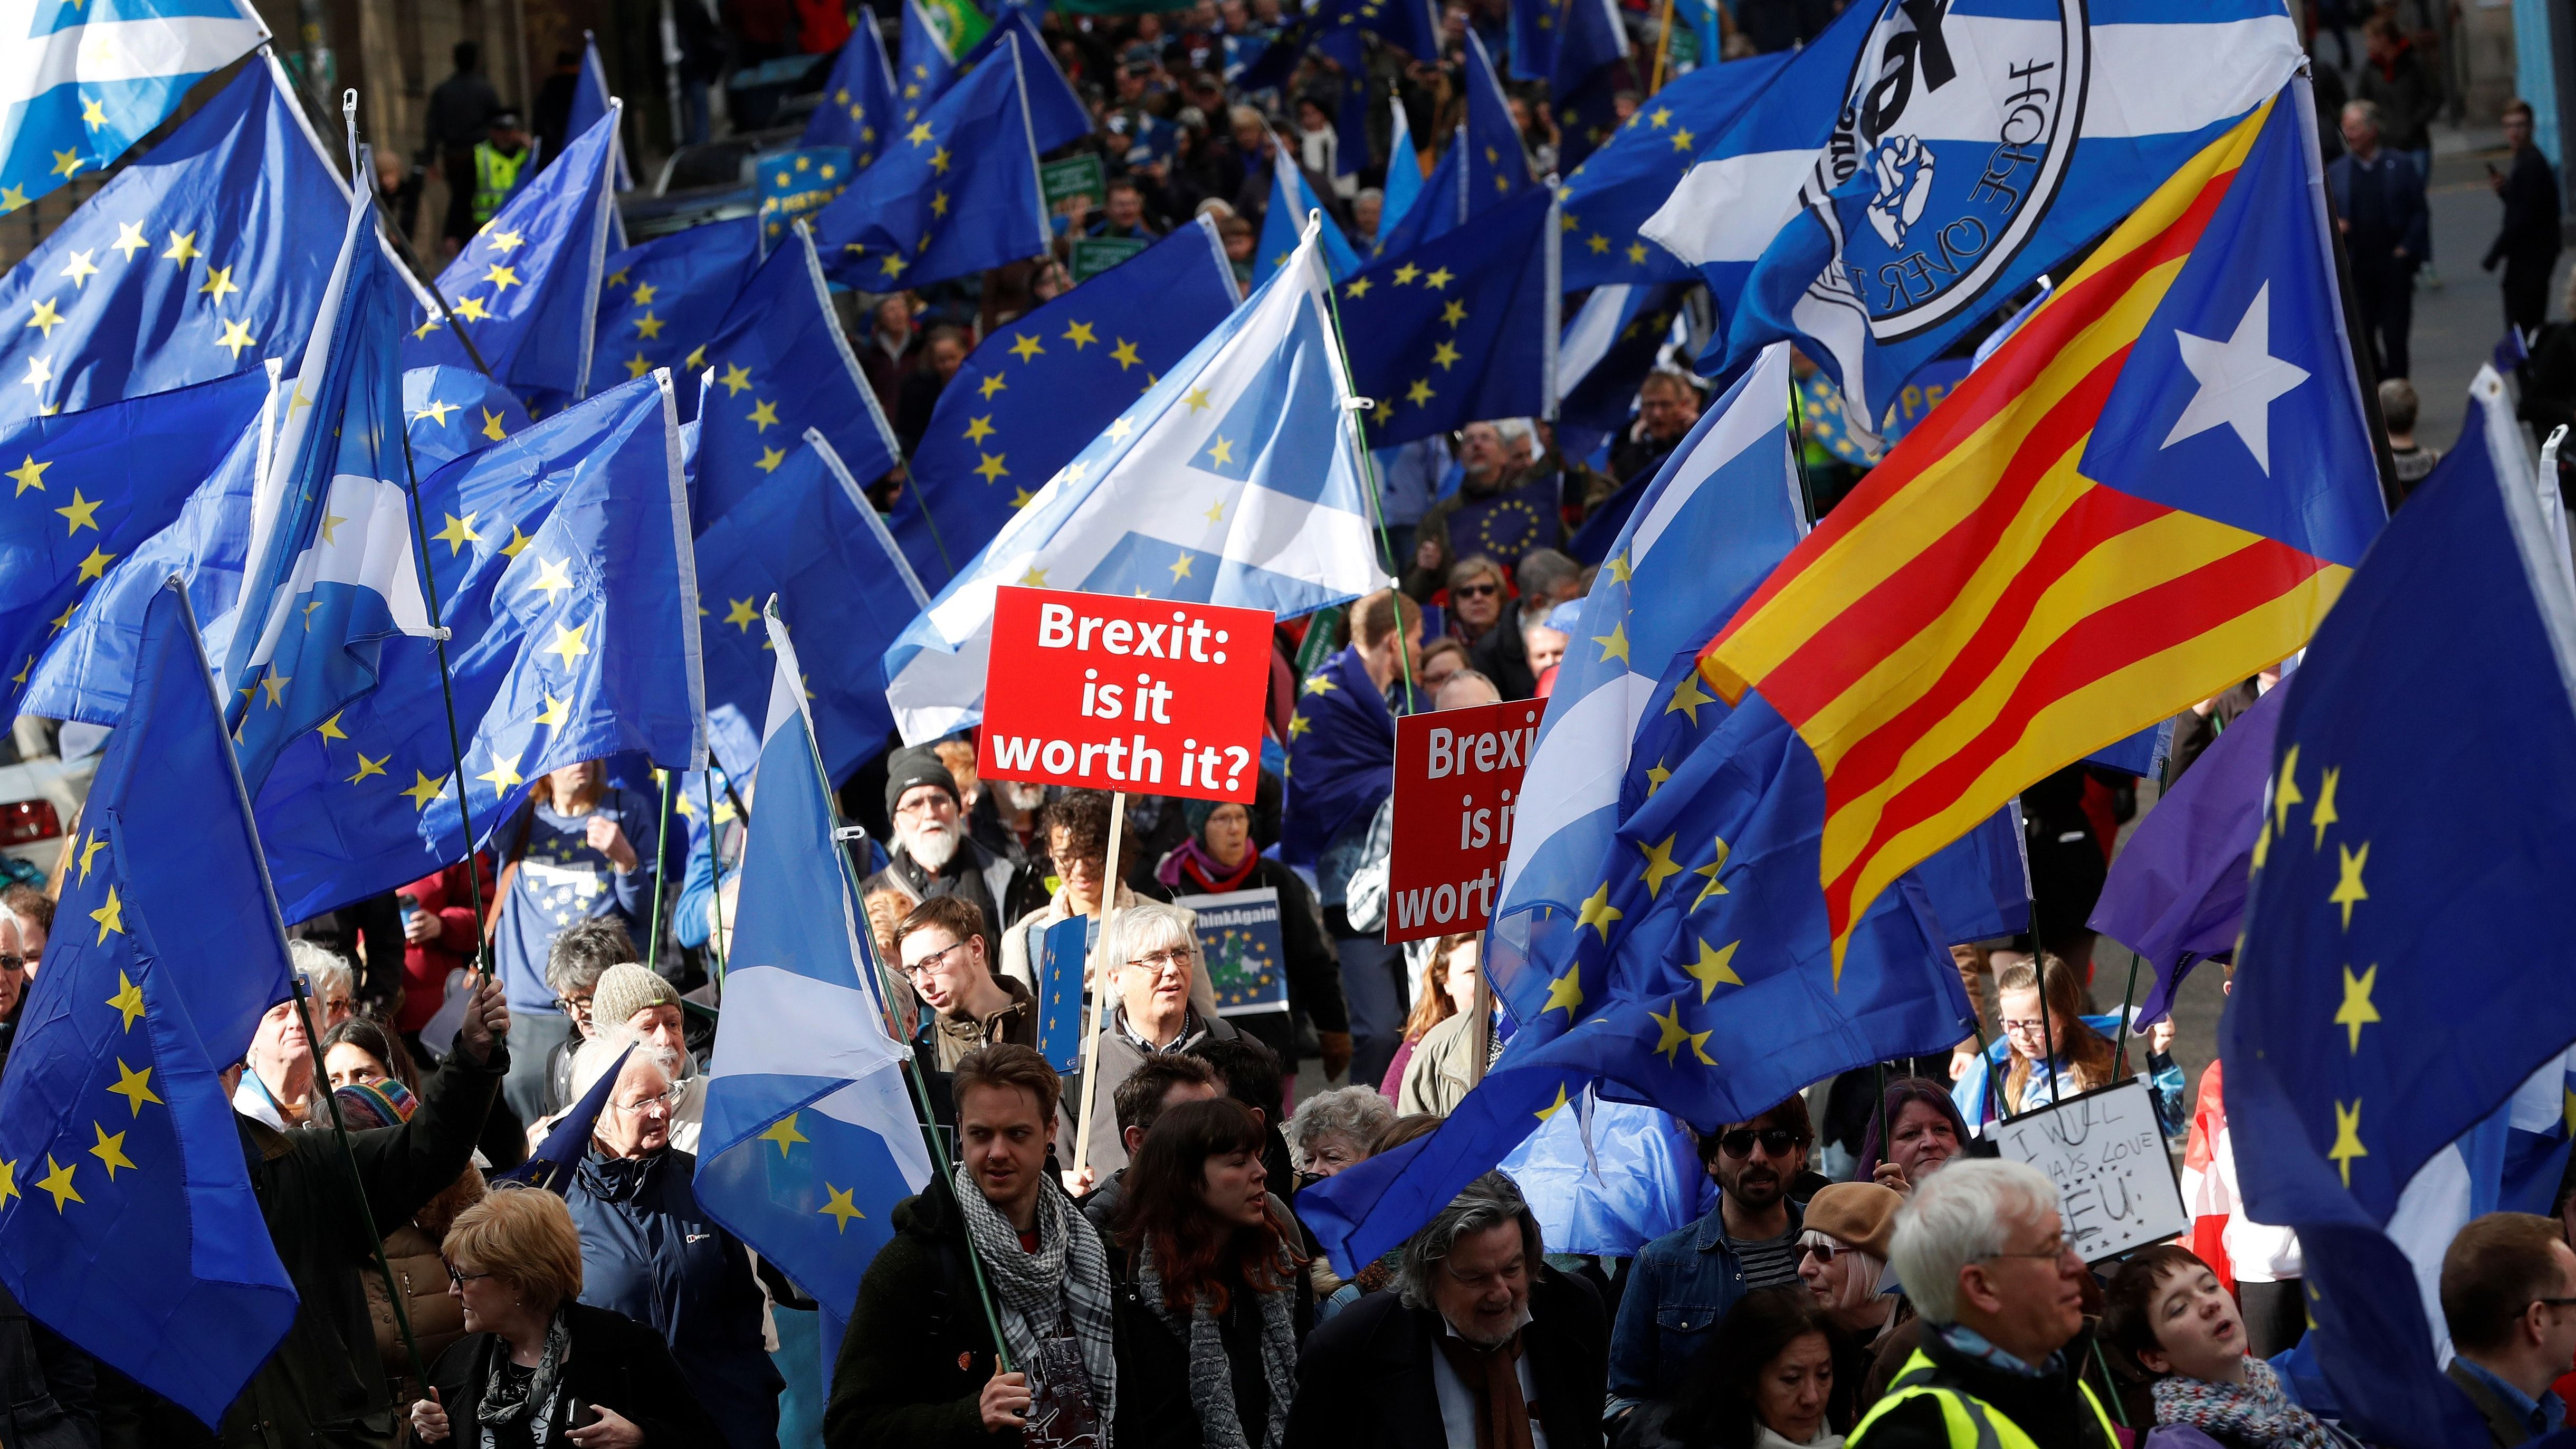 Protesters wave Saltires and EU flags as they take part in a demonstration to demand a vote on the Brexit deal between Britain and the European Union in Edinburgh, Scotland, March 24, 2018. REUTERS/Russell Cheyne - RC12526D81C0